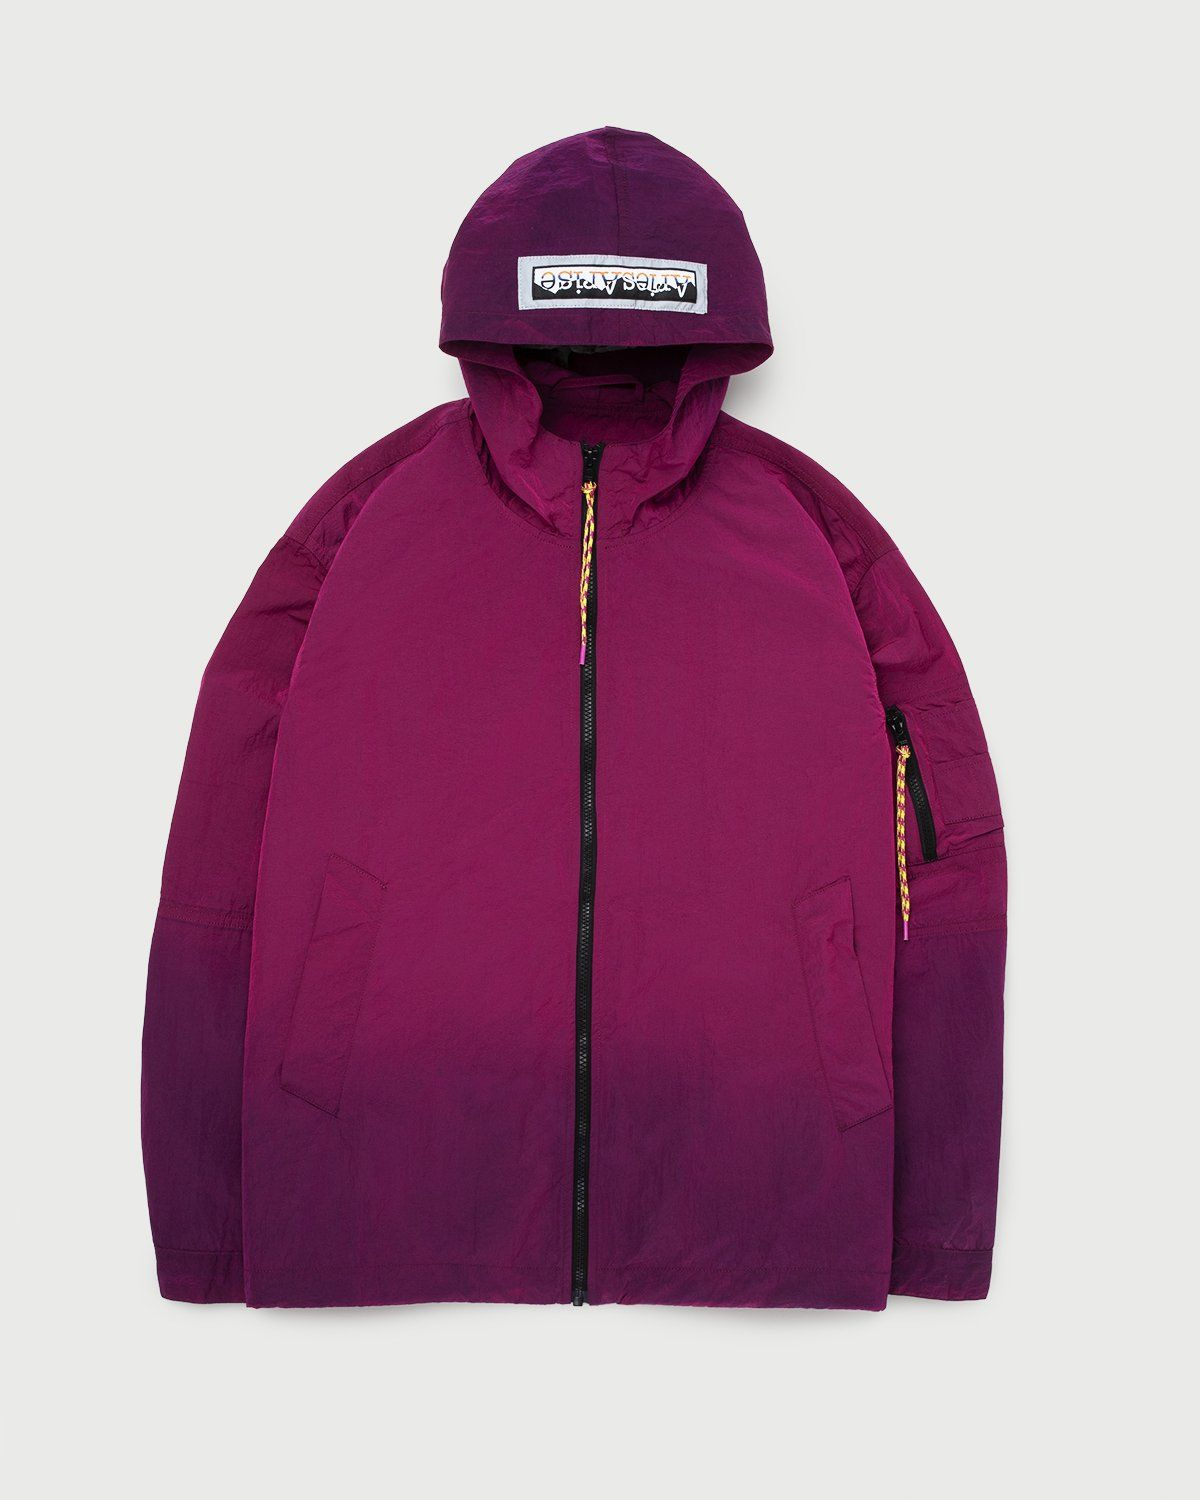 Aries — Ombre Dyed Tech Jacket Fuchsia - Image 1